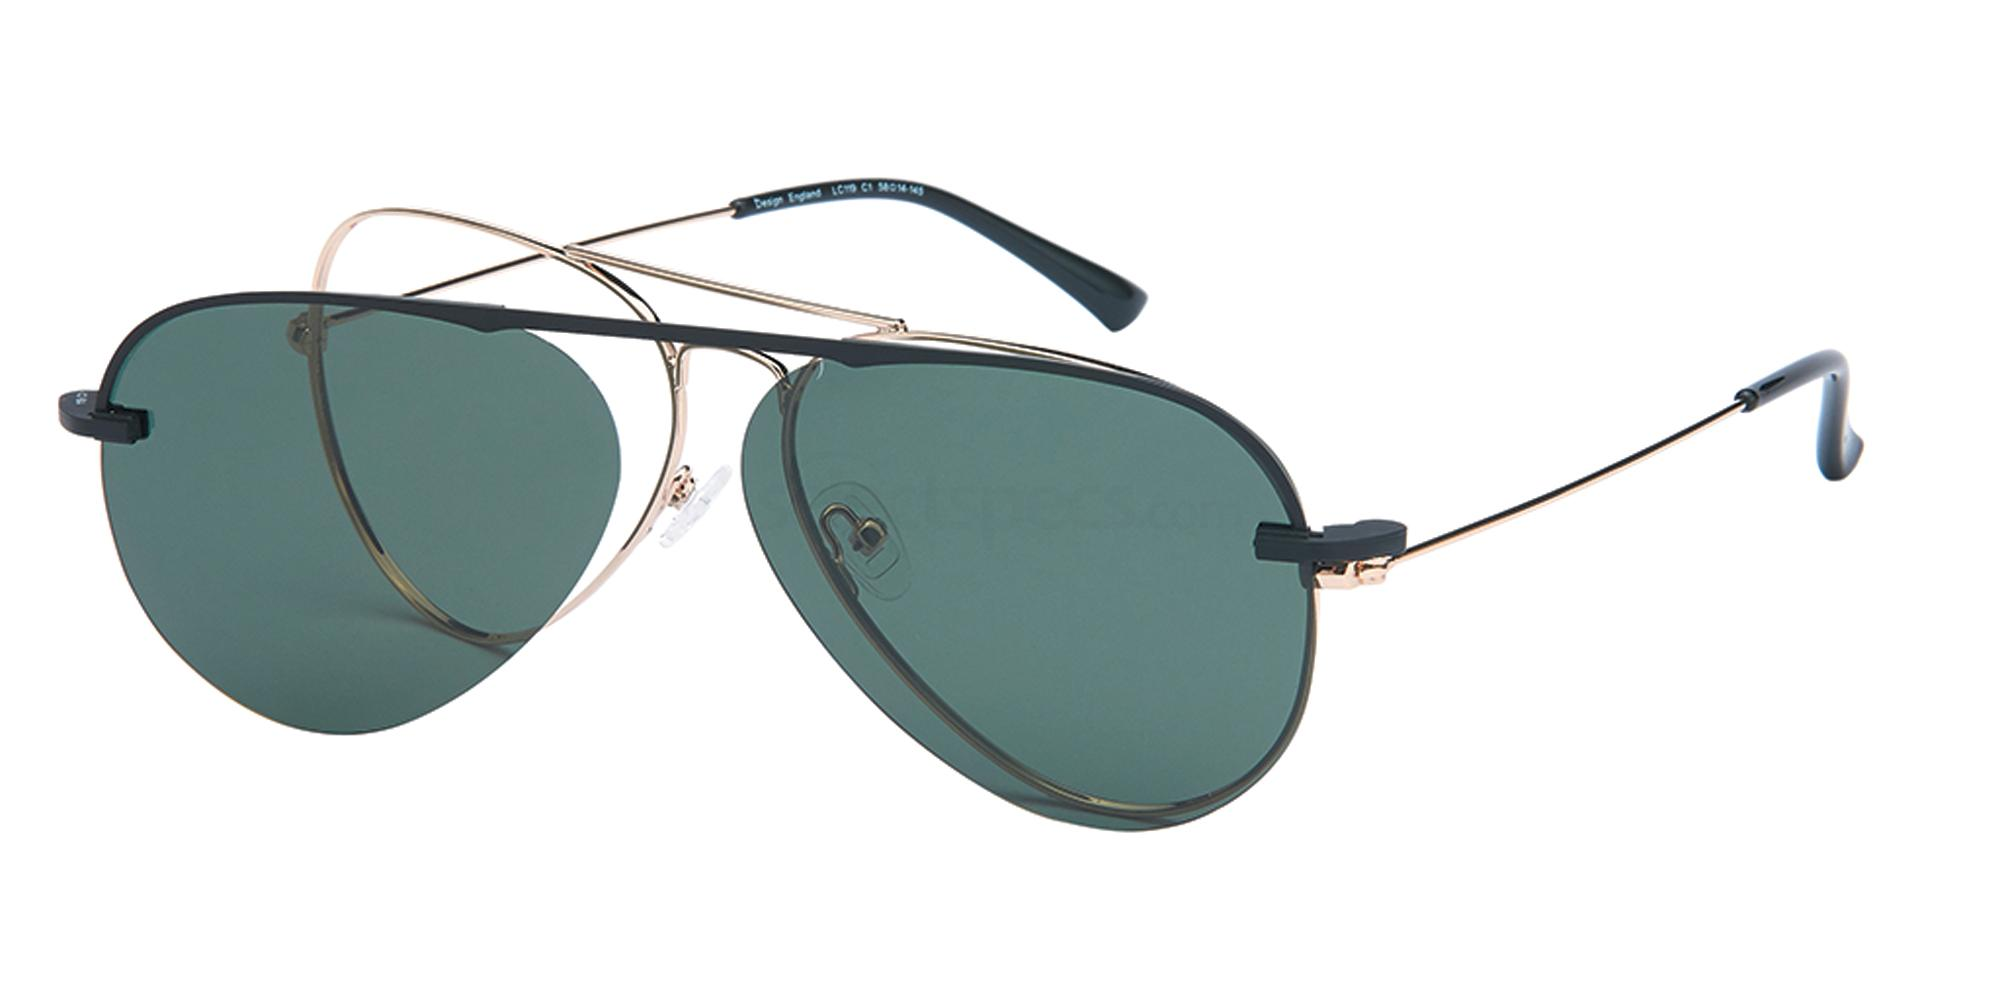 C1 LC119 - with Clip On Glasses, London Club